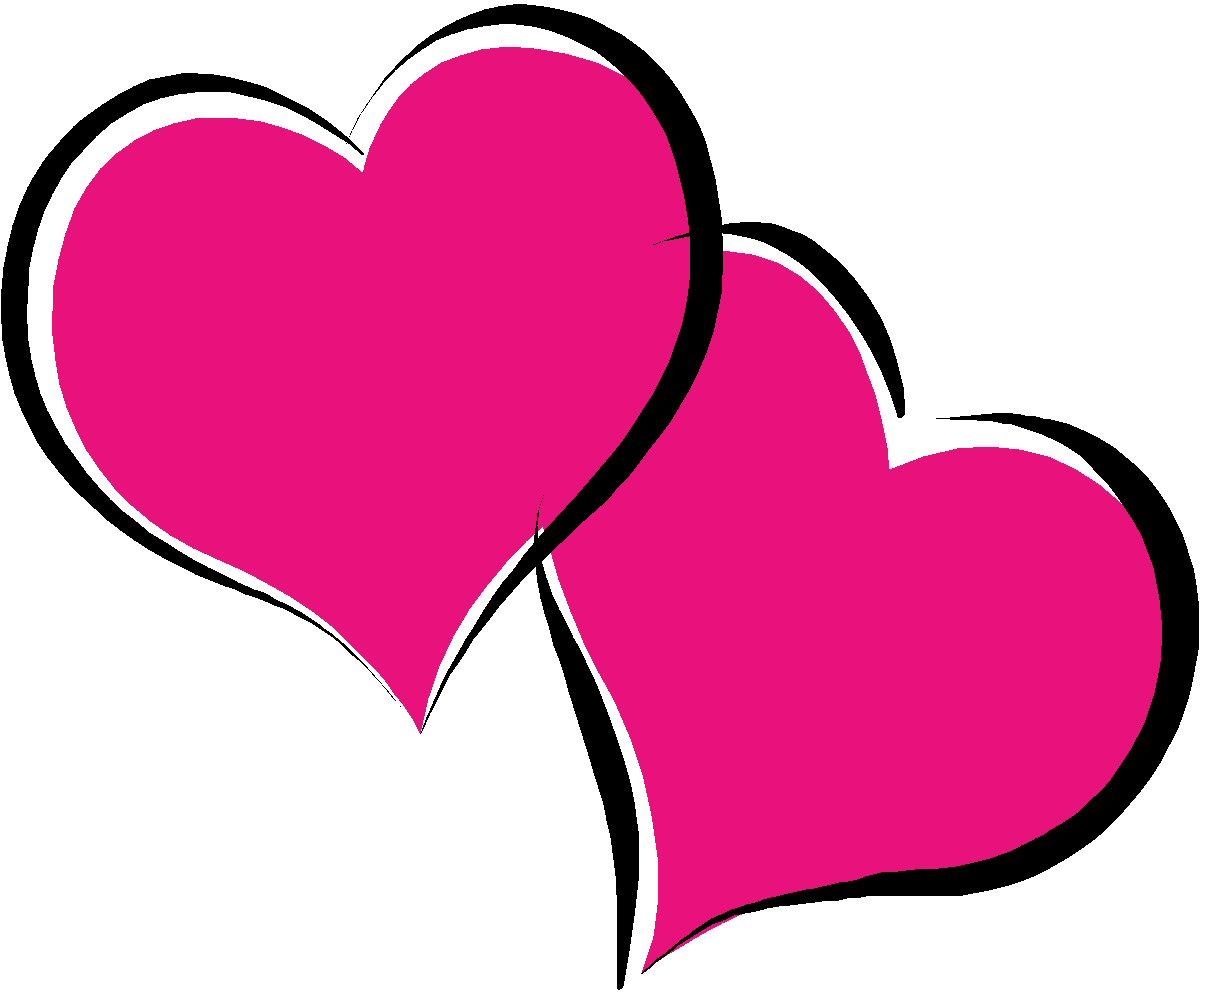 Hearts heart clipart free clipart images